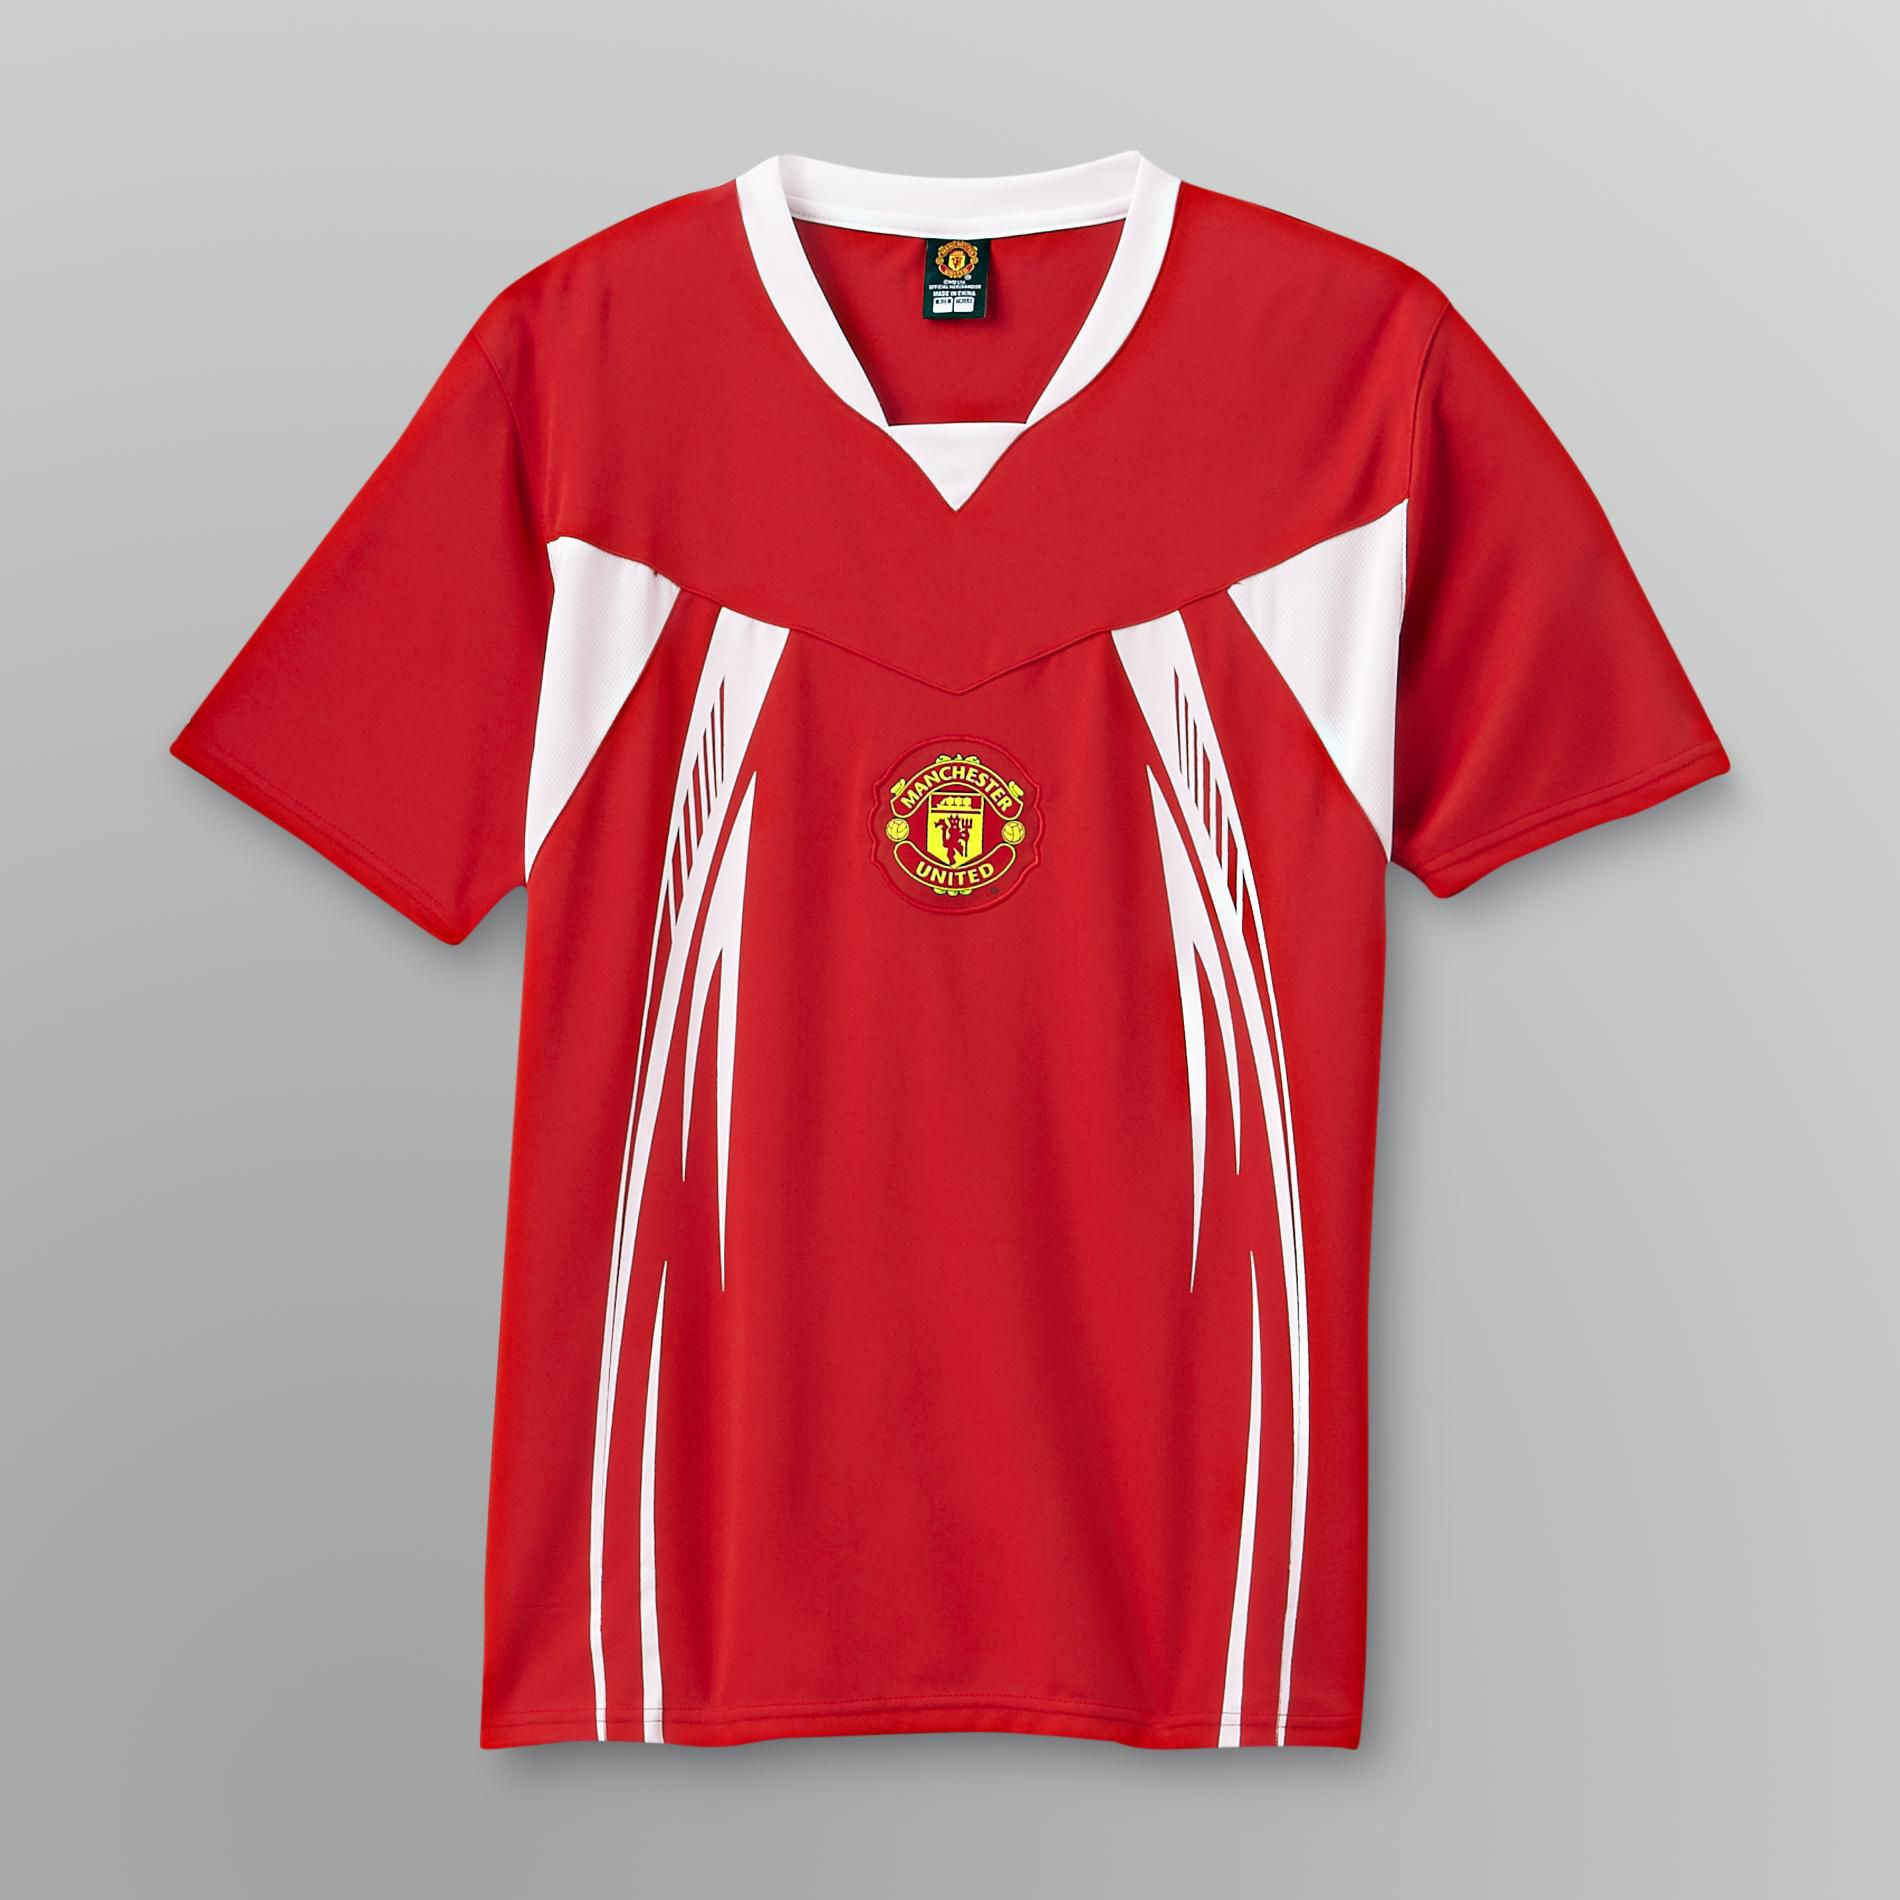 Manchester United Men's Manchester United Home Jersey - Red at Kmart.com